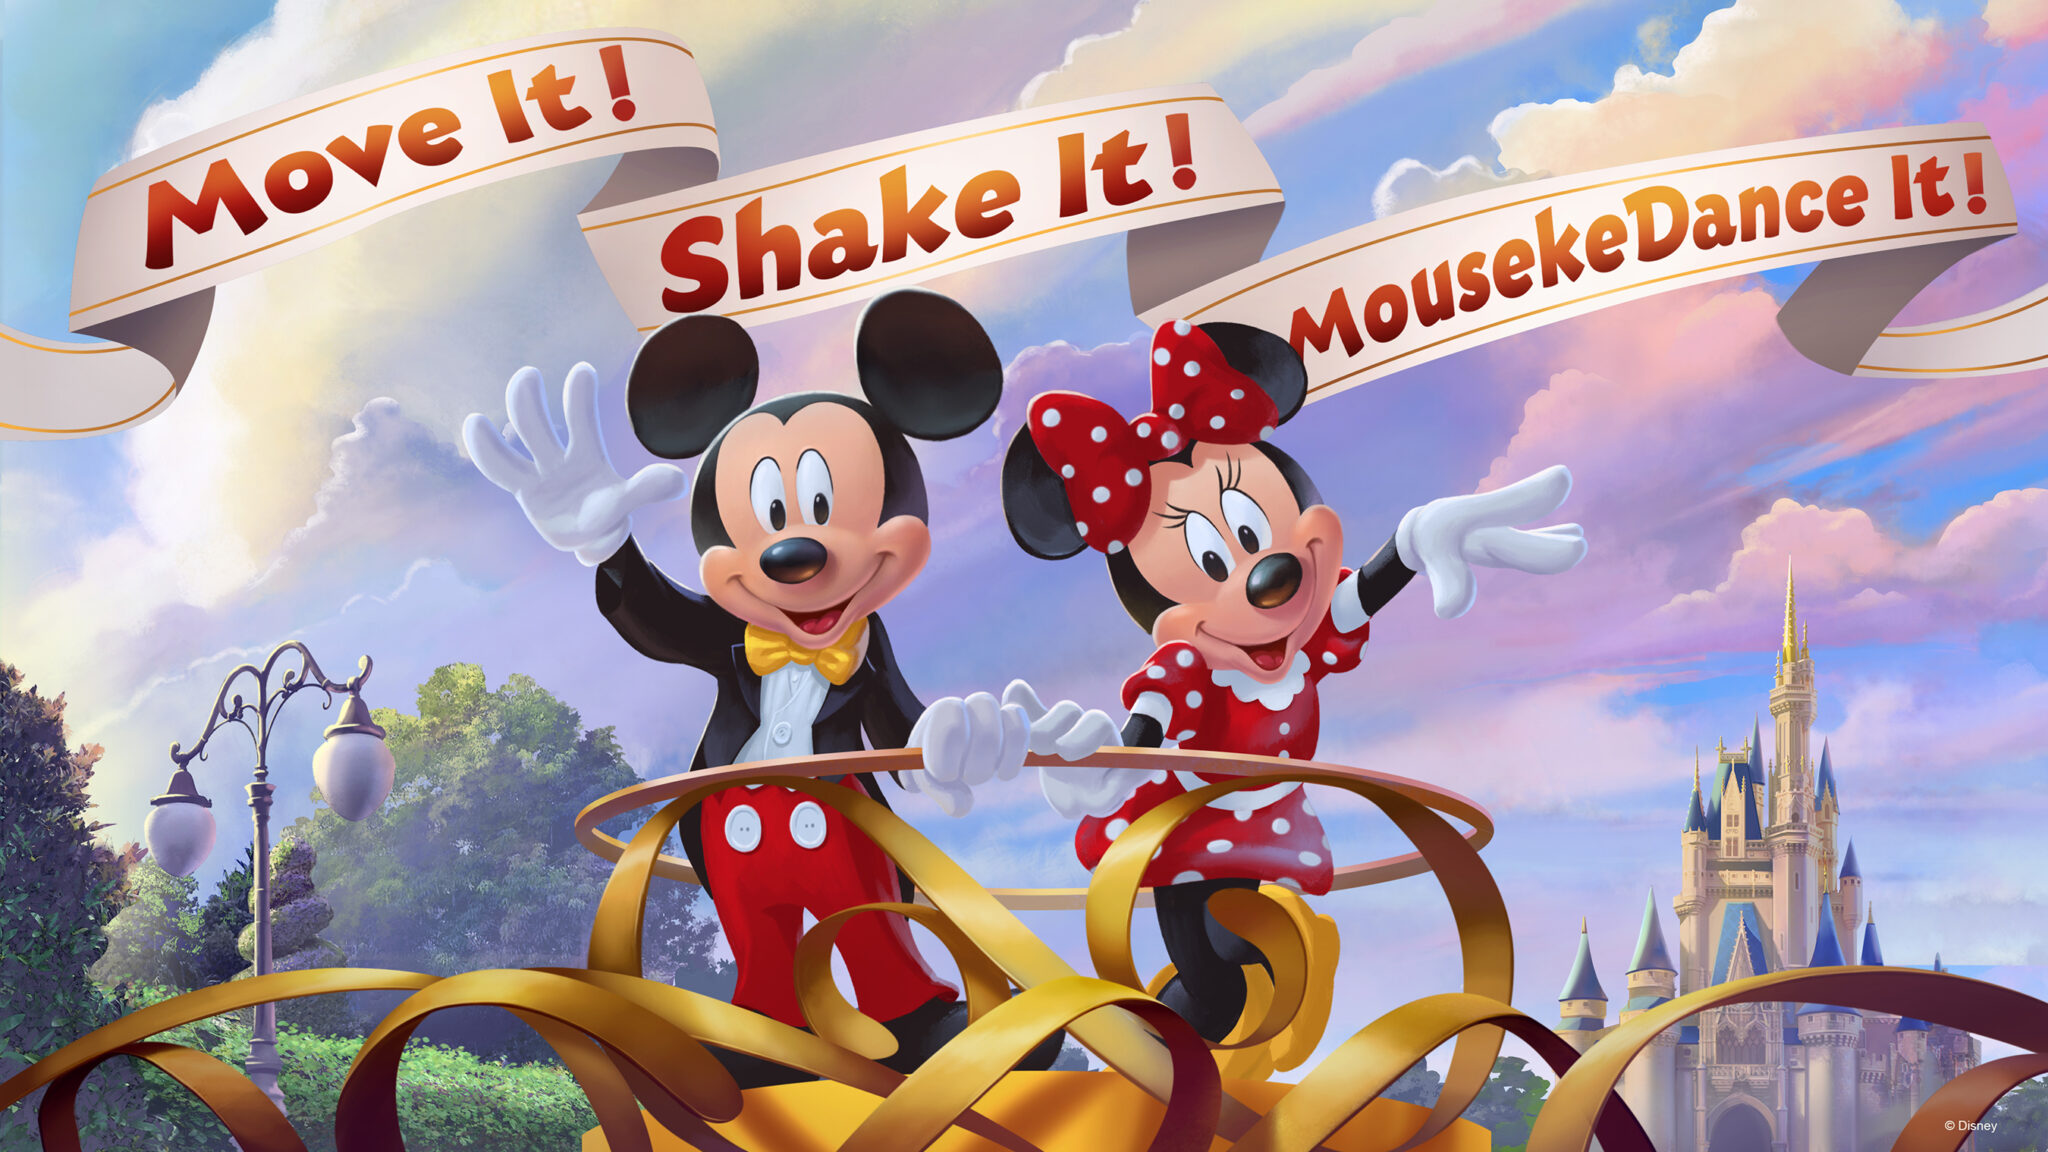 See the new Move It! Shake It! MousekeDance It! Street Party in 2019.